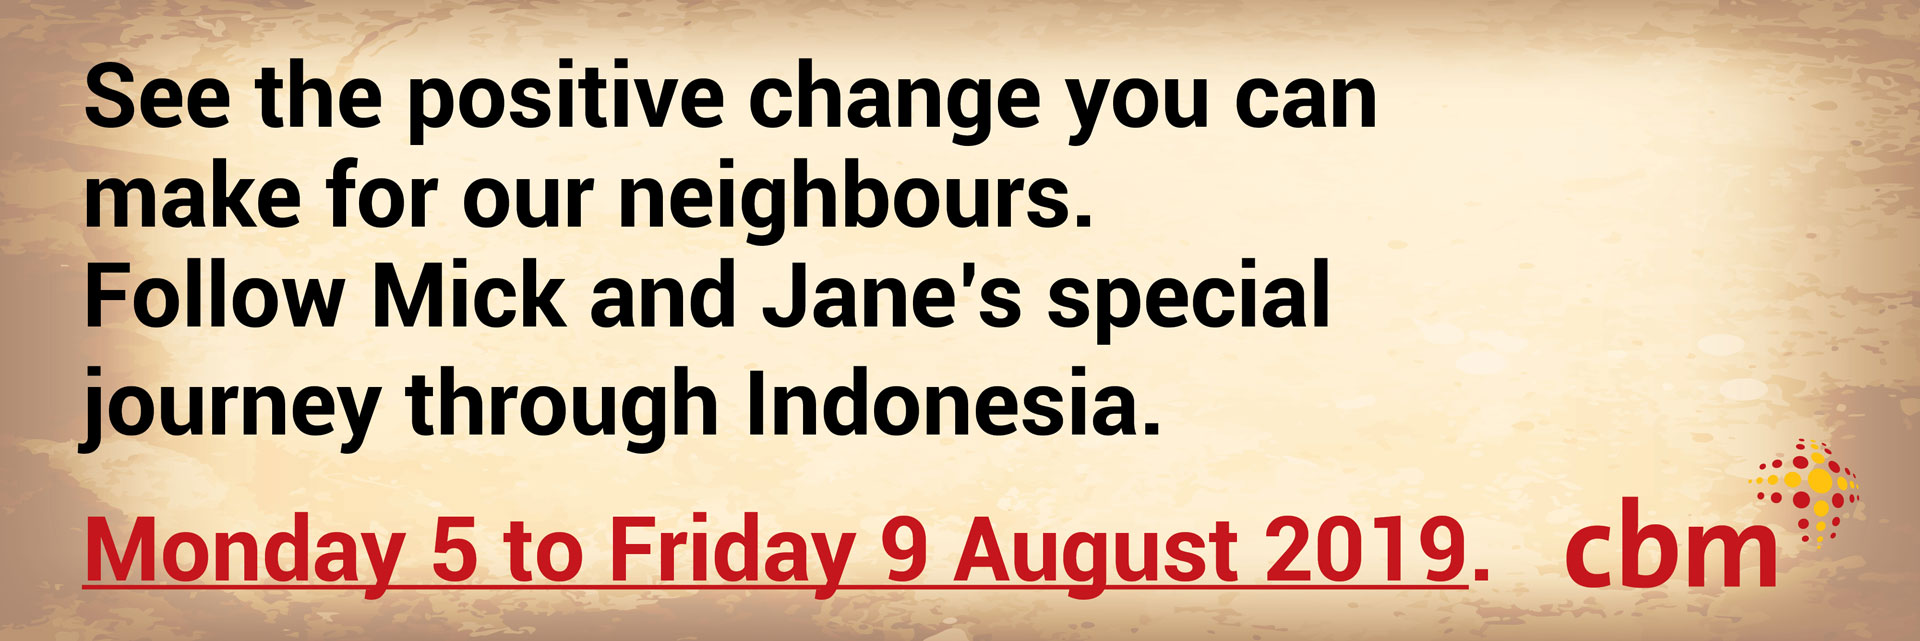 See the positive change you can see for our neighbours. Follow Mick and Jane's special journey through Indonesia. Monday 5 to Friday 9 August 2019